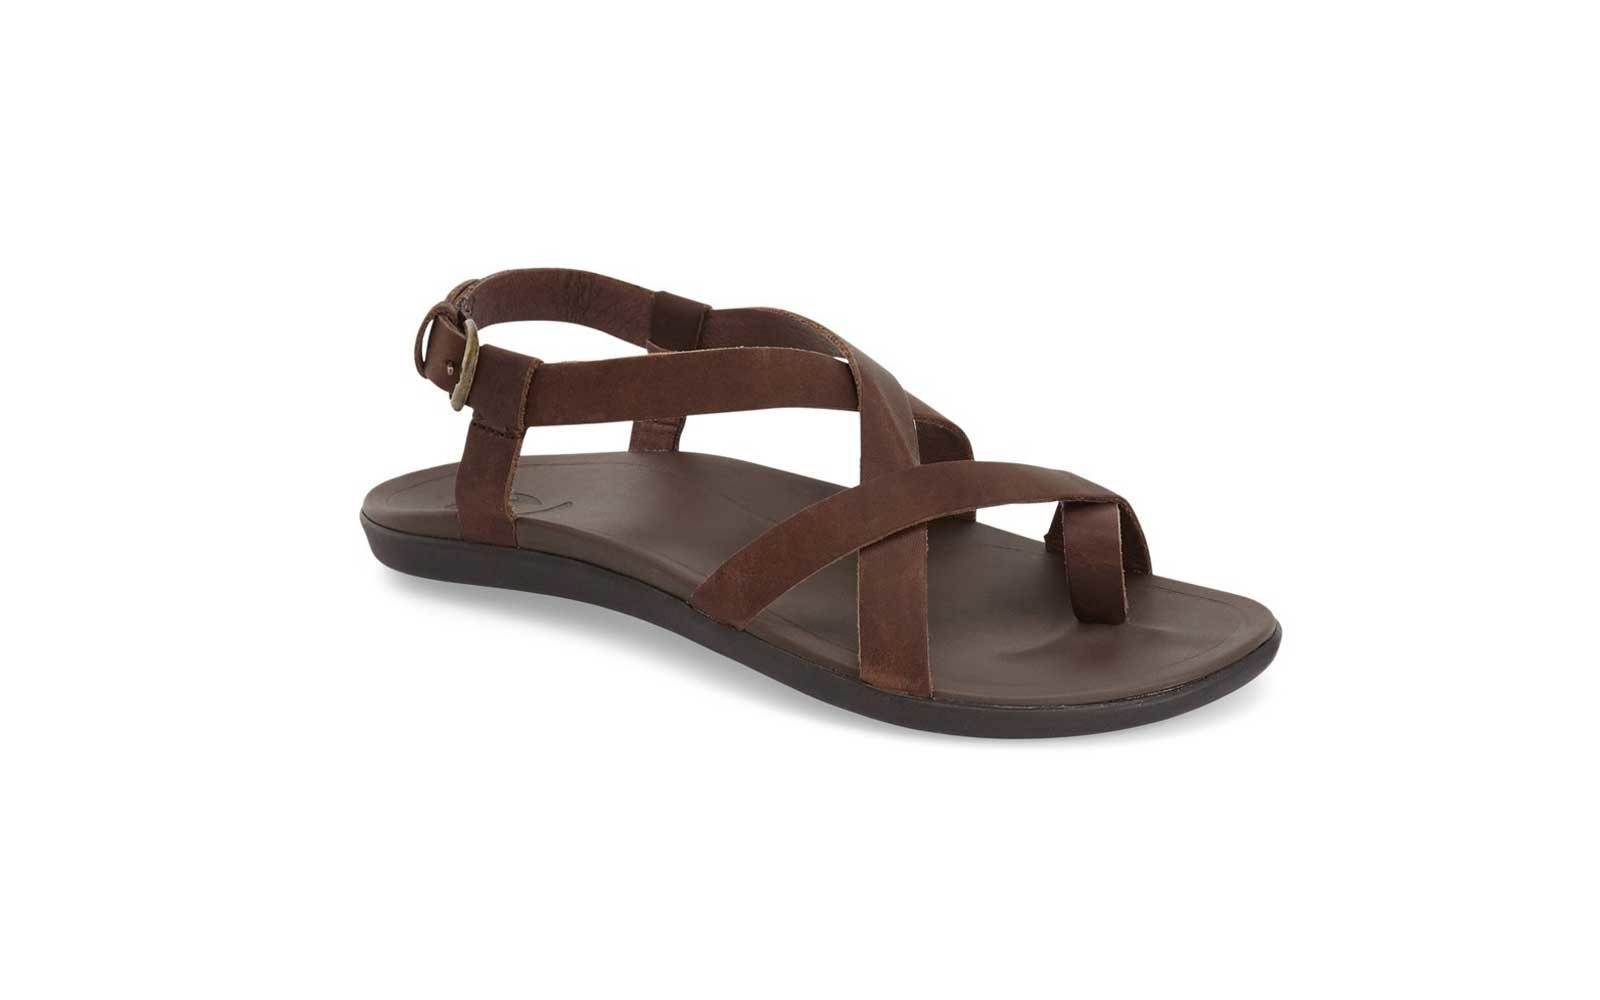 3bd9a338090 The Most Comfortable Walking Sandals for Women